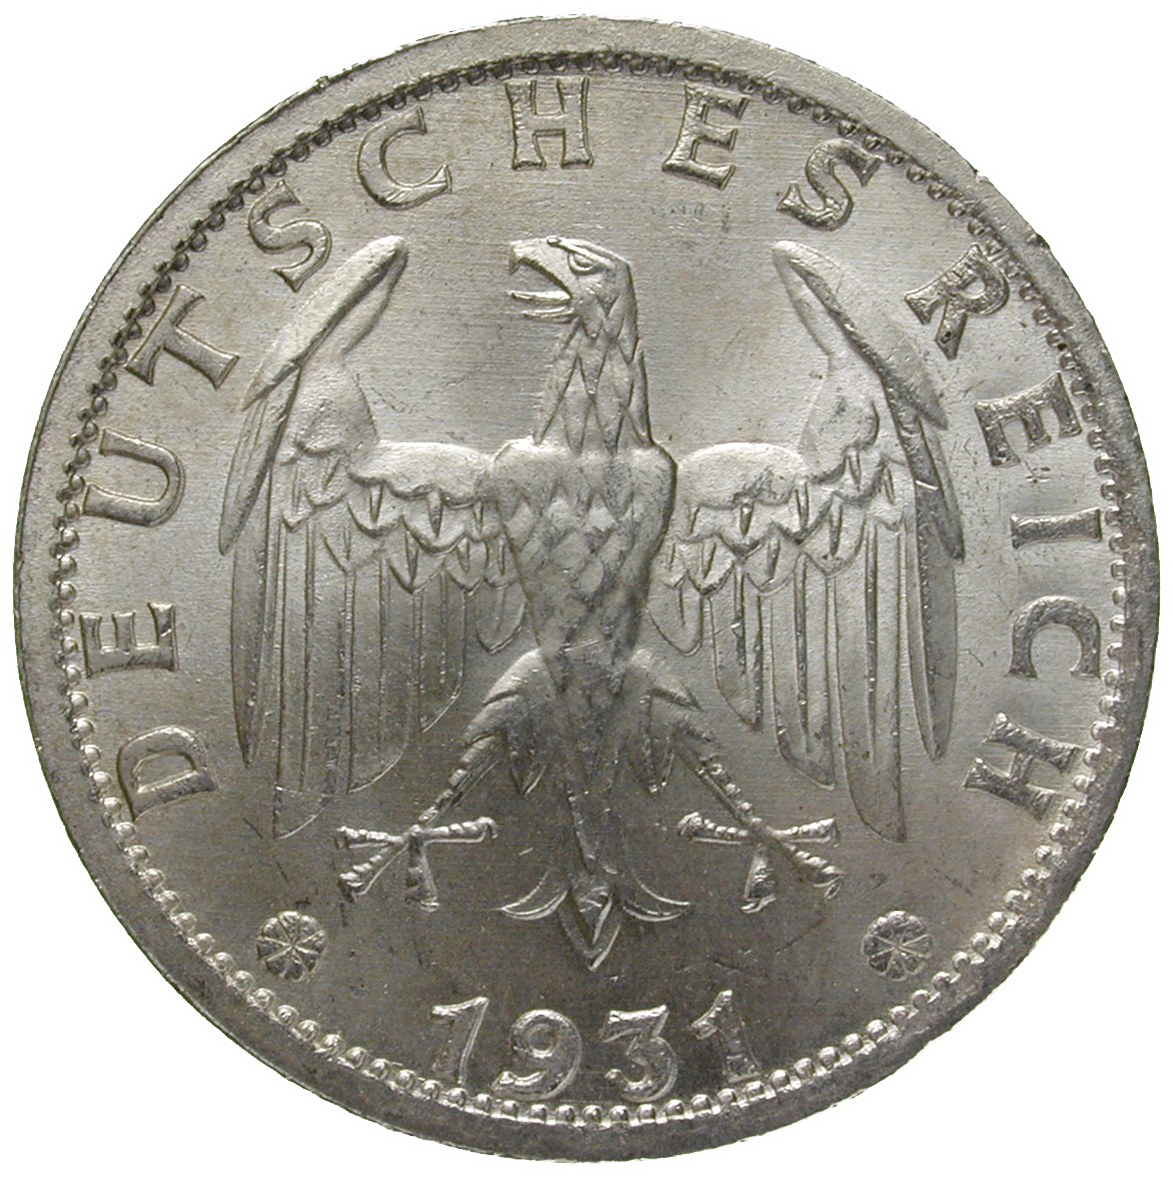 German Empire, Weimar Republic, 3 Reichsmark 1931 (obverse)